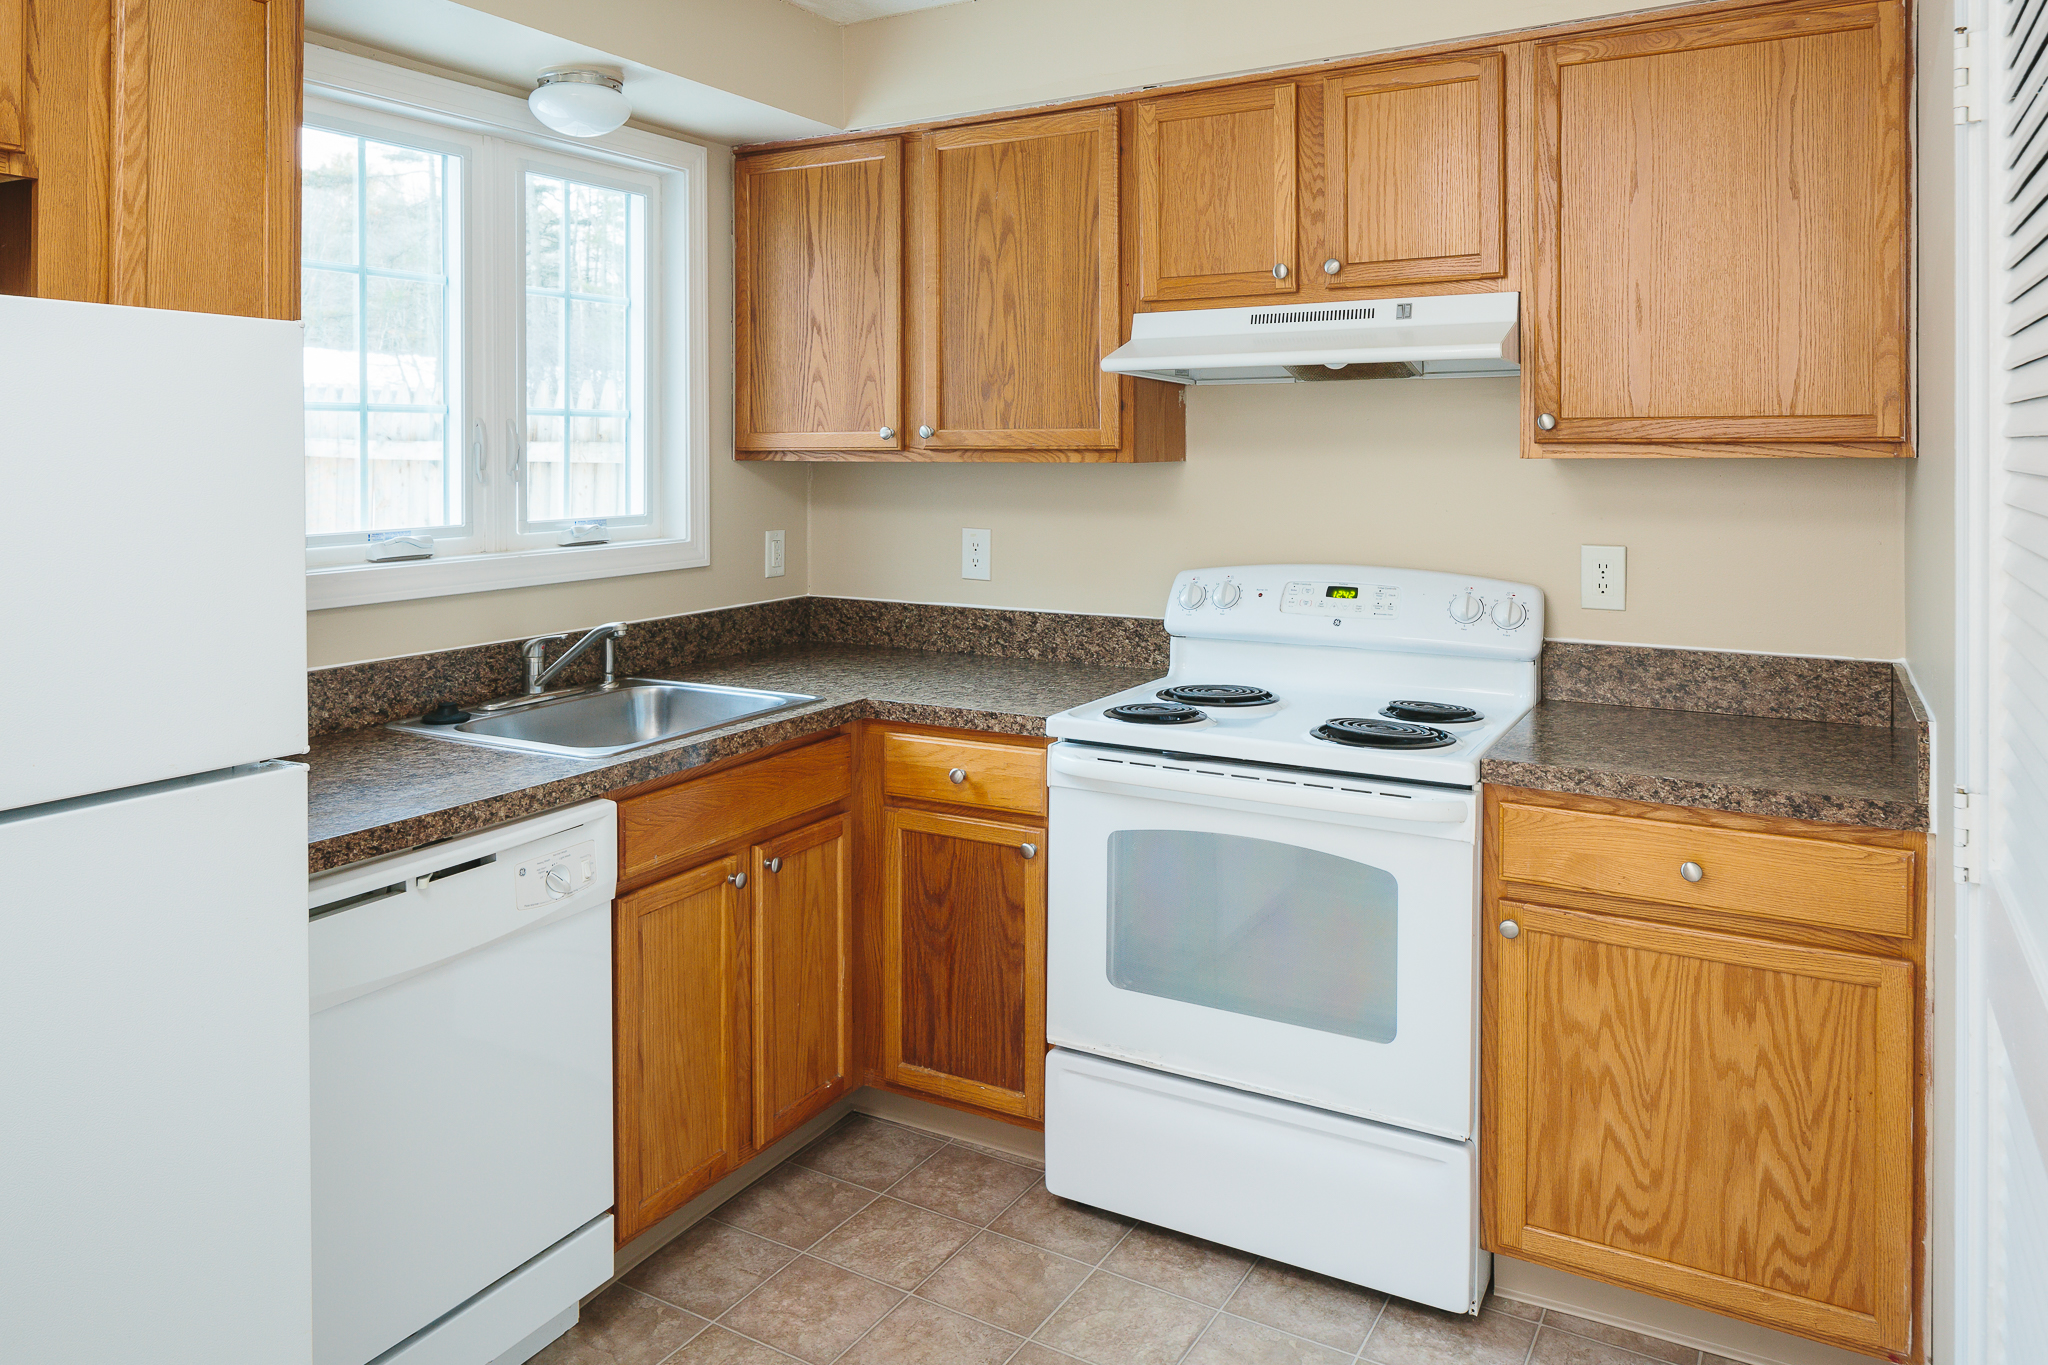 Apartments Near Saint Joseph's Yarmouth Green for Saint Joseph's College of Maine Students in Standish, ME